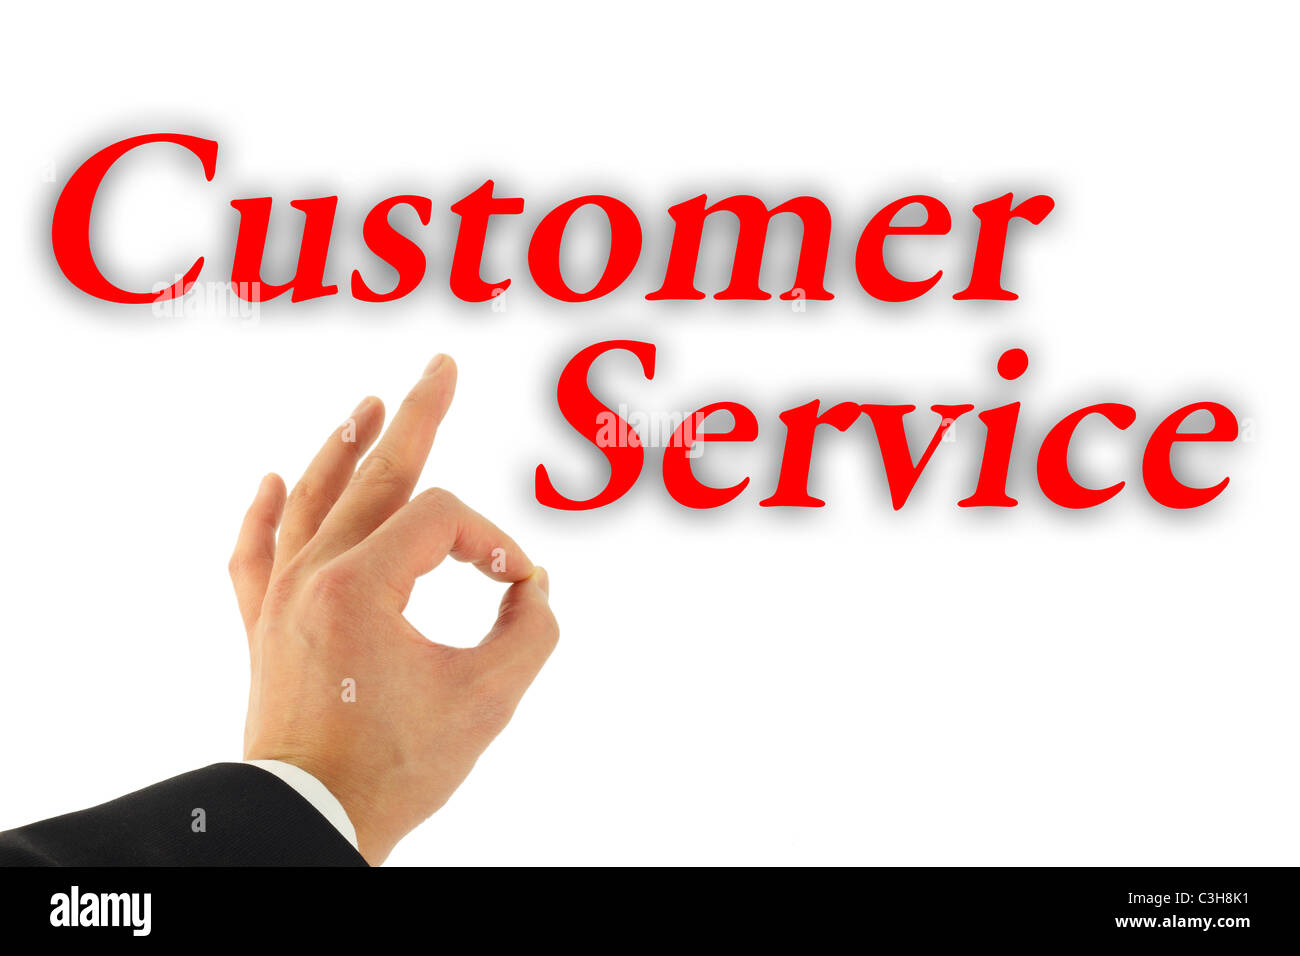 Excellent Customer Service concept with hand okay sign isolated on white - Stock Image